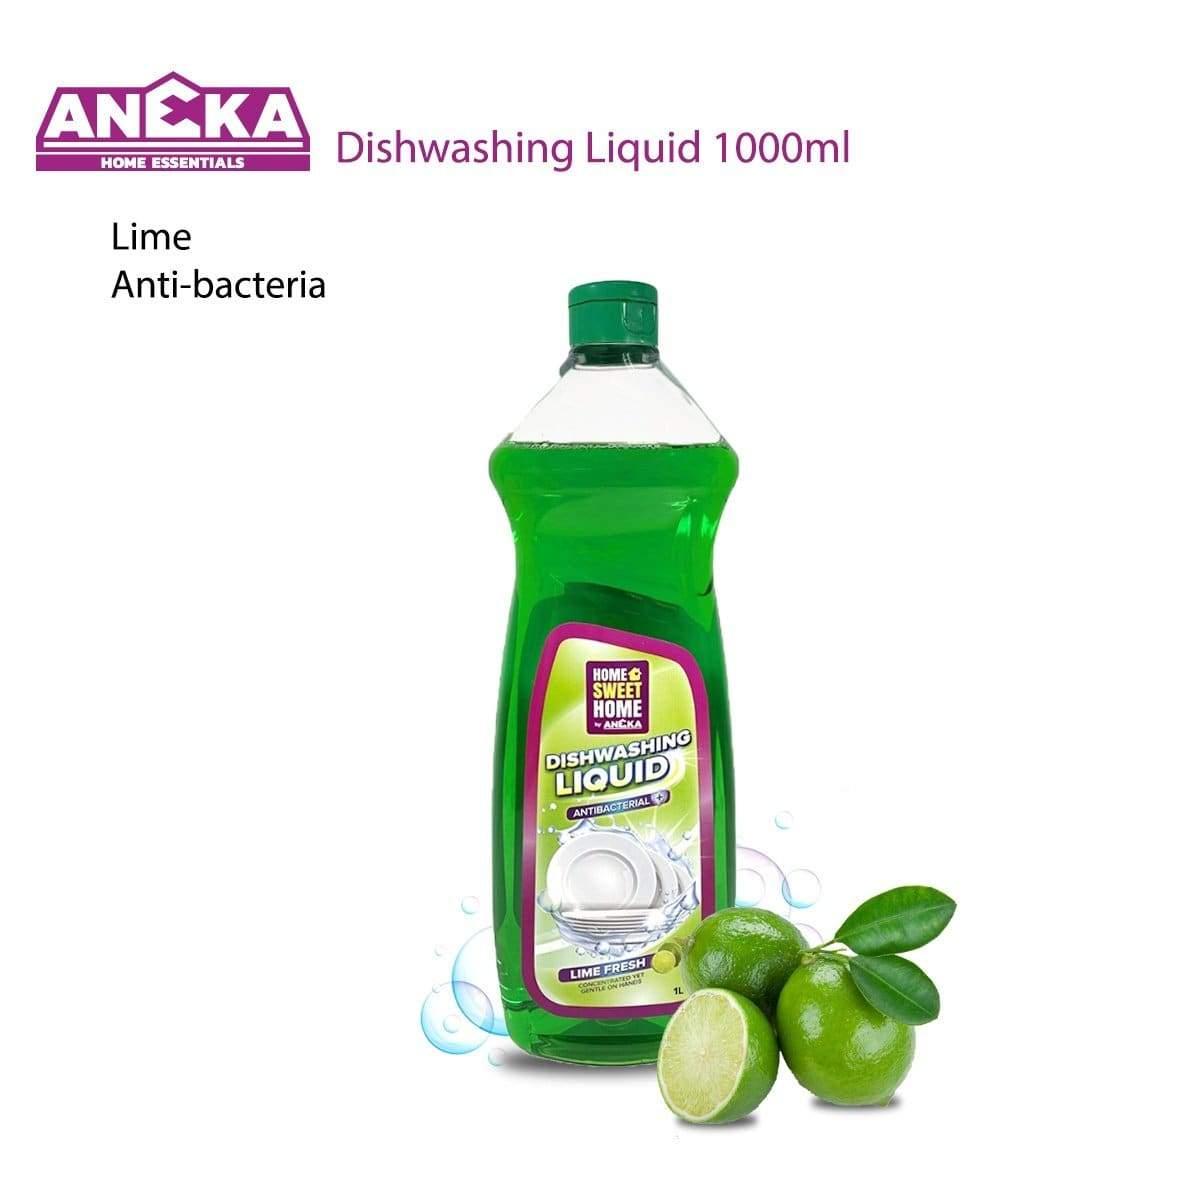 Home Sweet Home Dishwashing Liquid 1000ml Lime